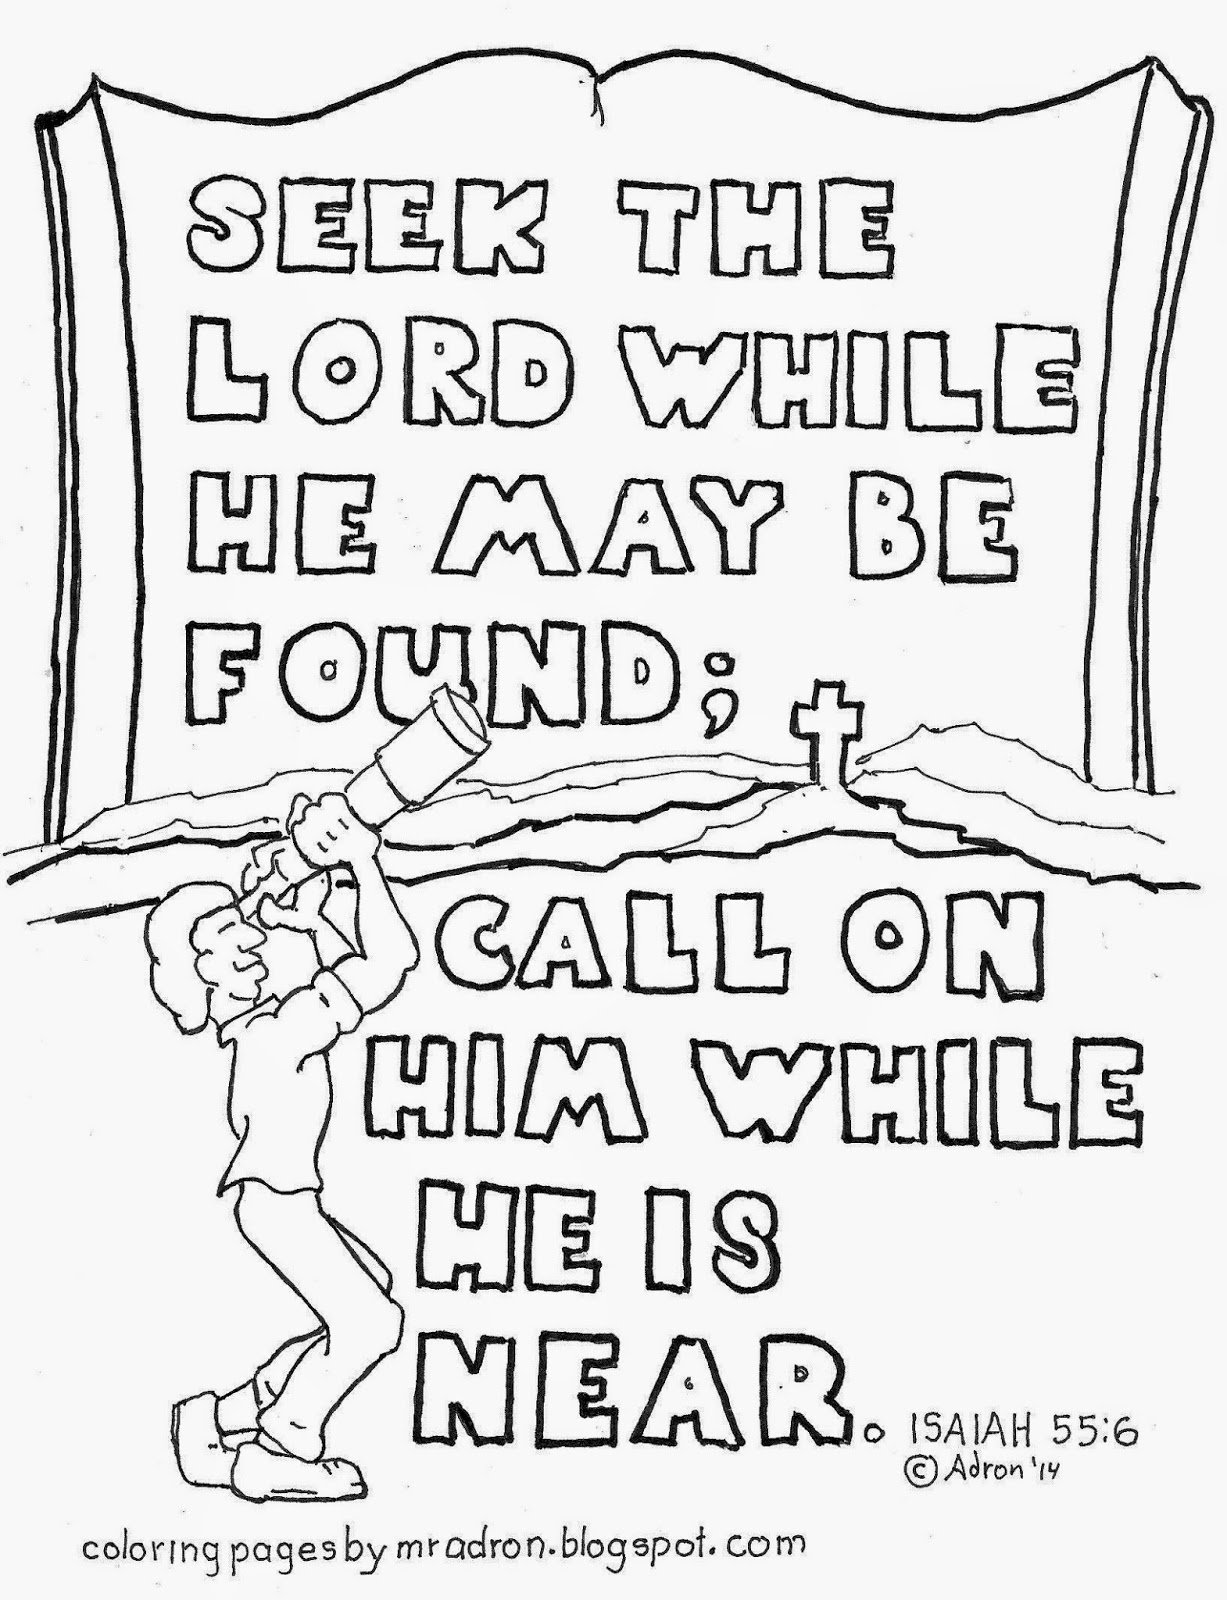 isaiah coloring pages coloring pages for kids by mr adron all we like sheep pages coloring isaiah